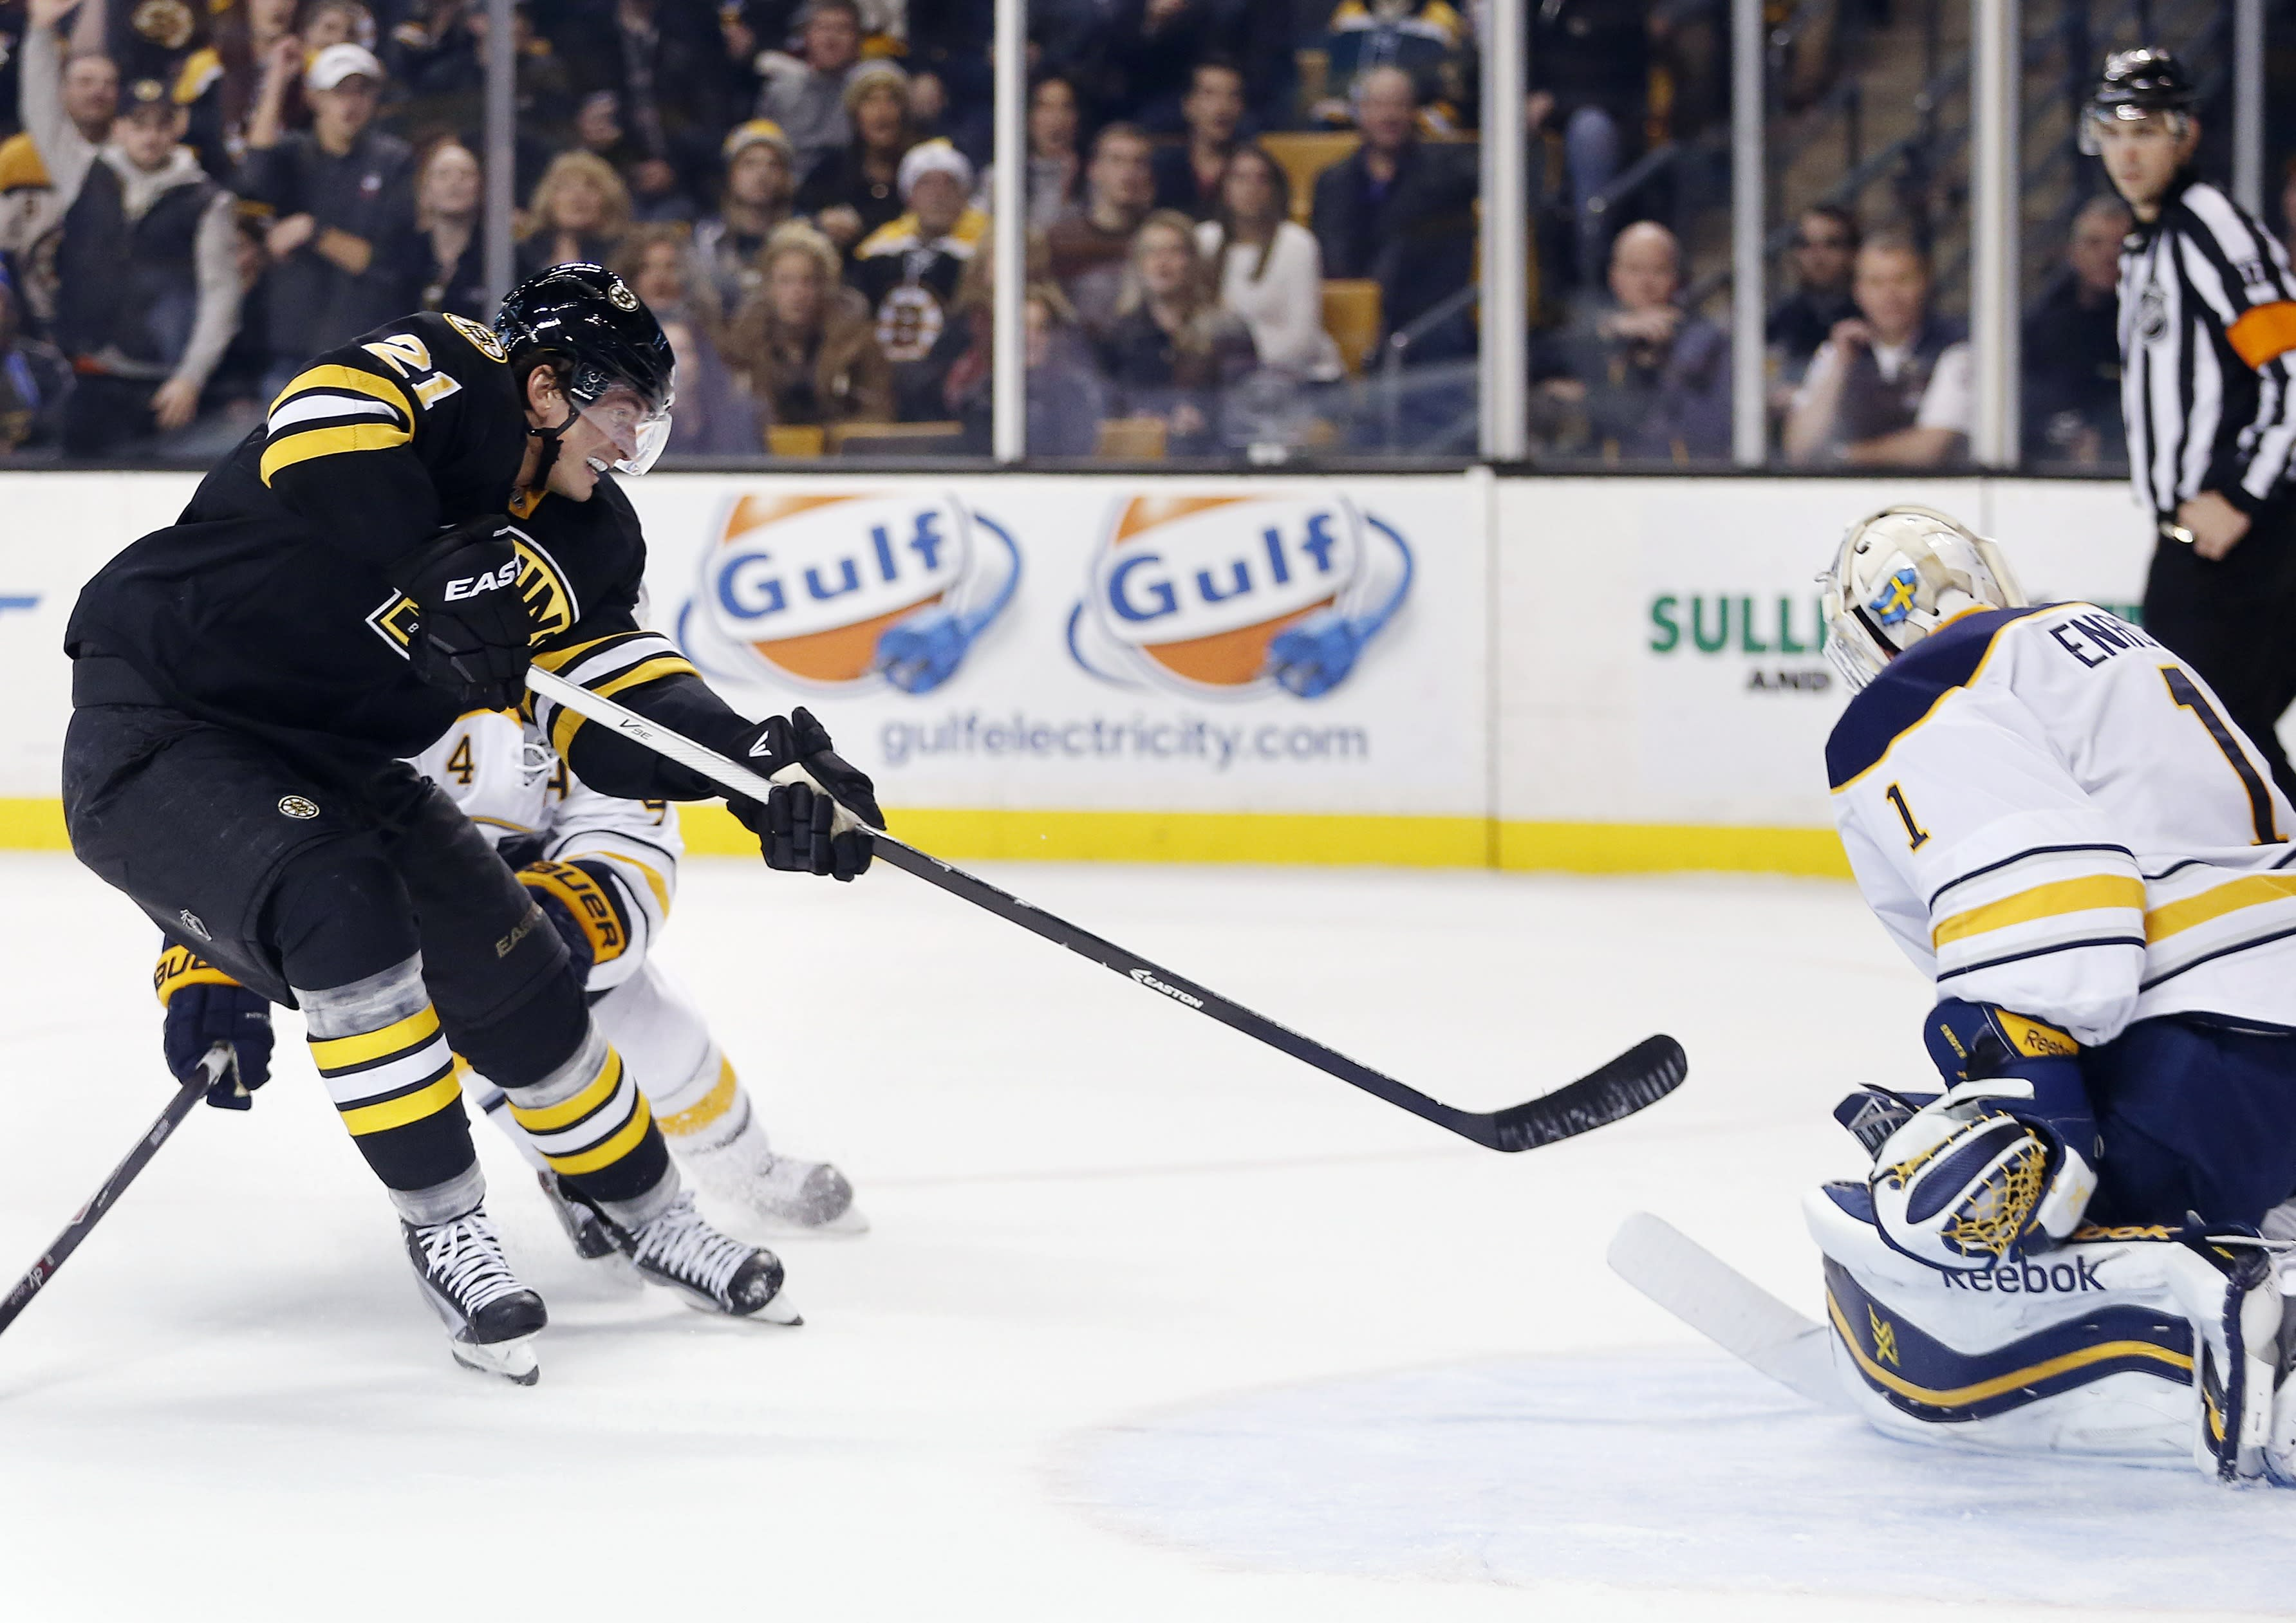 Bruins rally for 4-3 overtime win against Sabres